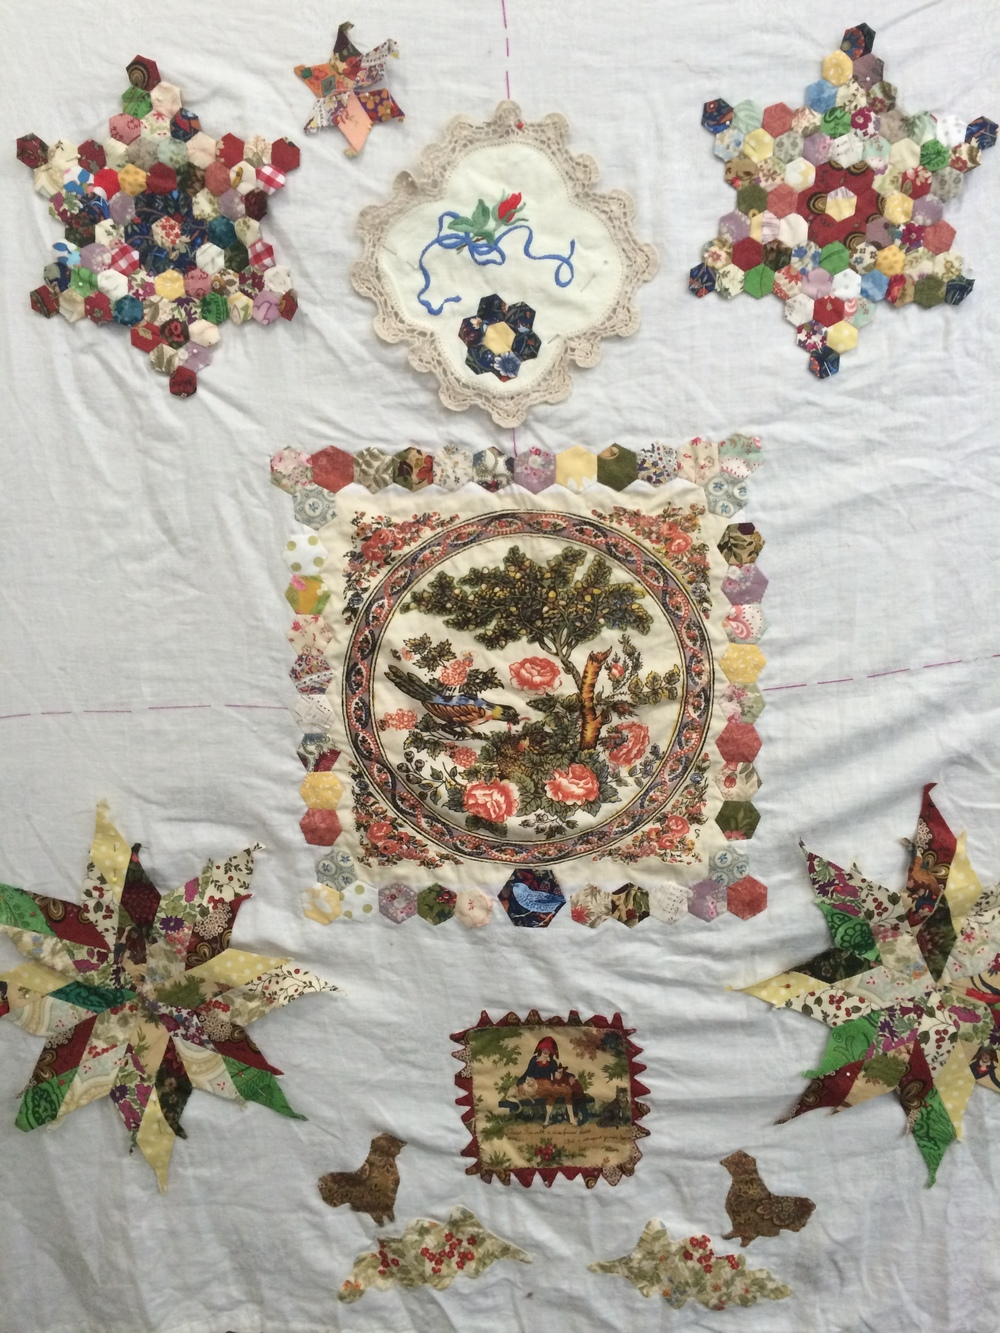 Darilyn's quilt top is in progress and includes vintage fabrics and keepsakes.